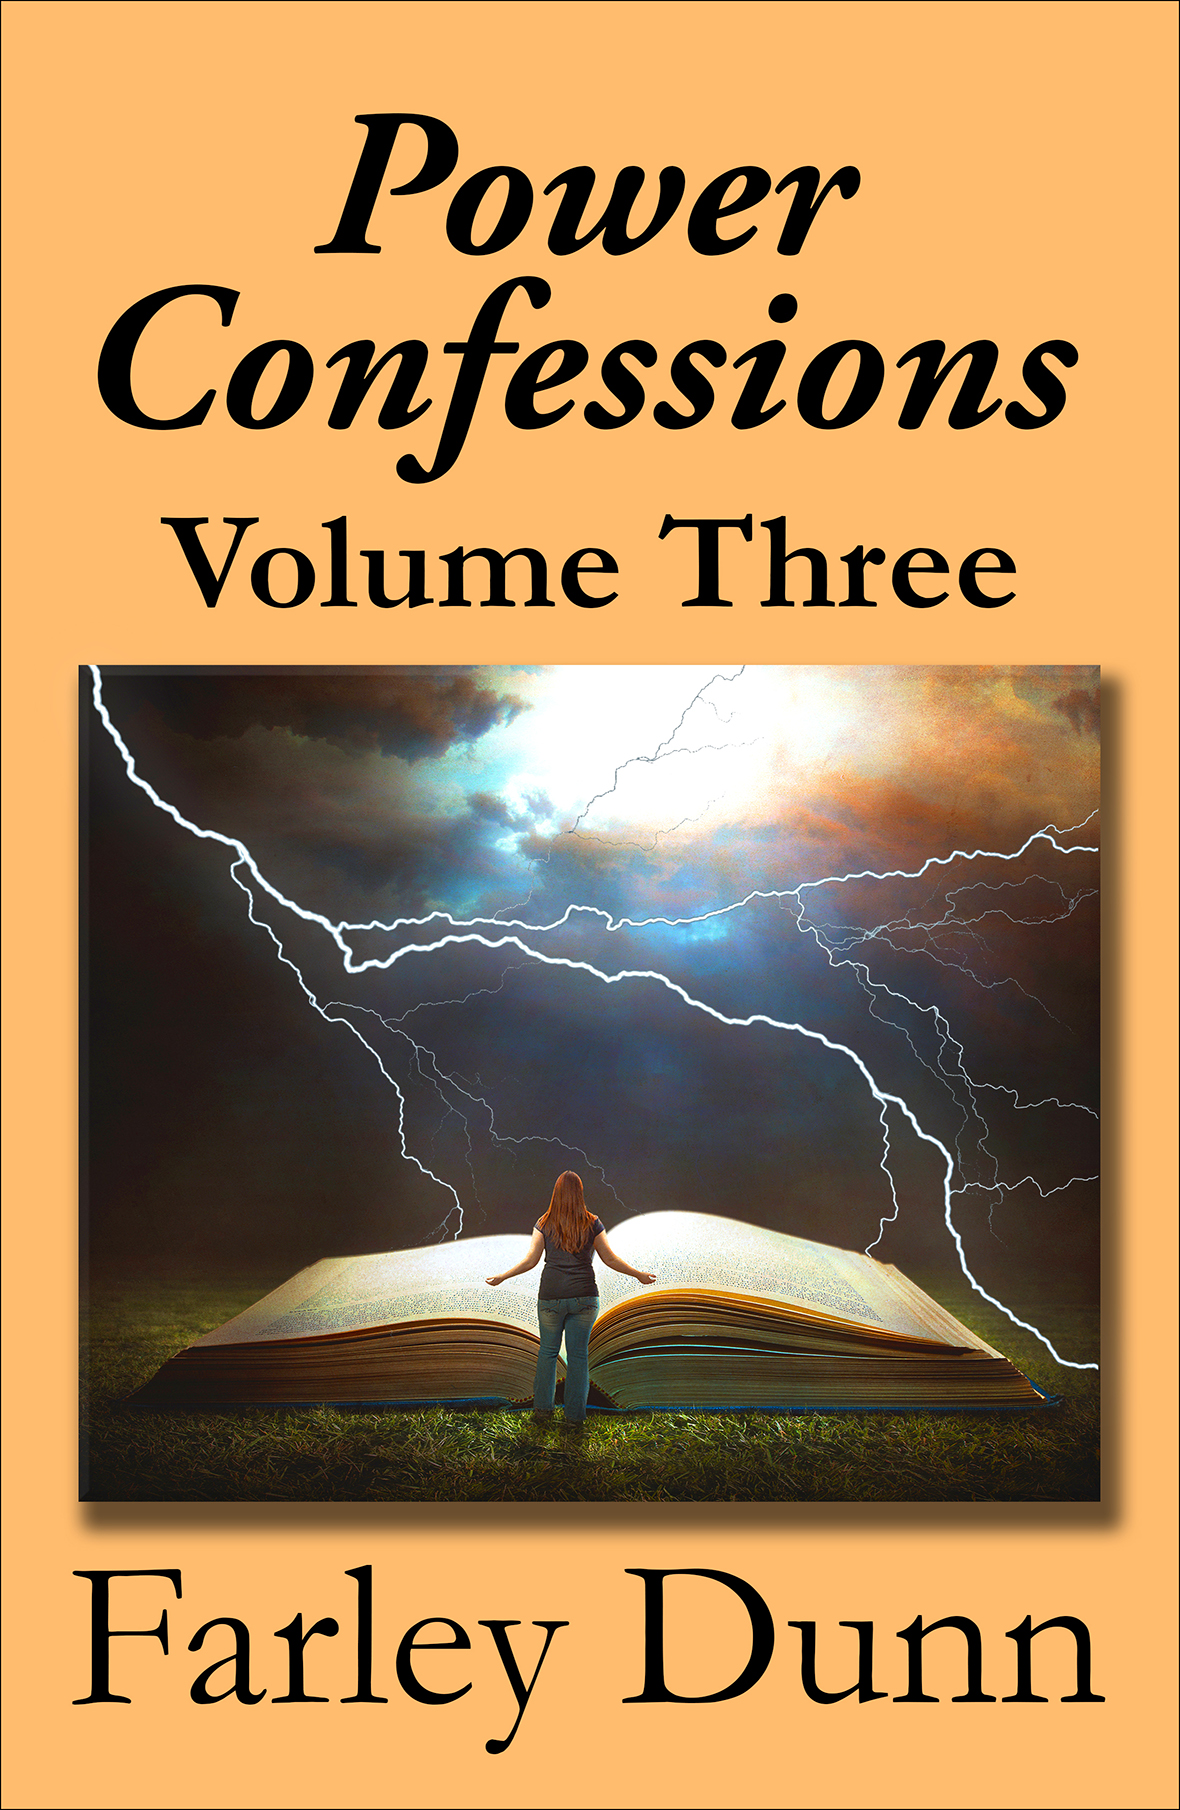 Power Confessions Volume Three Cover Front V2 for Web Insertion